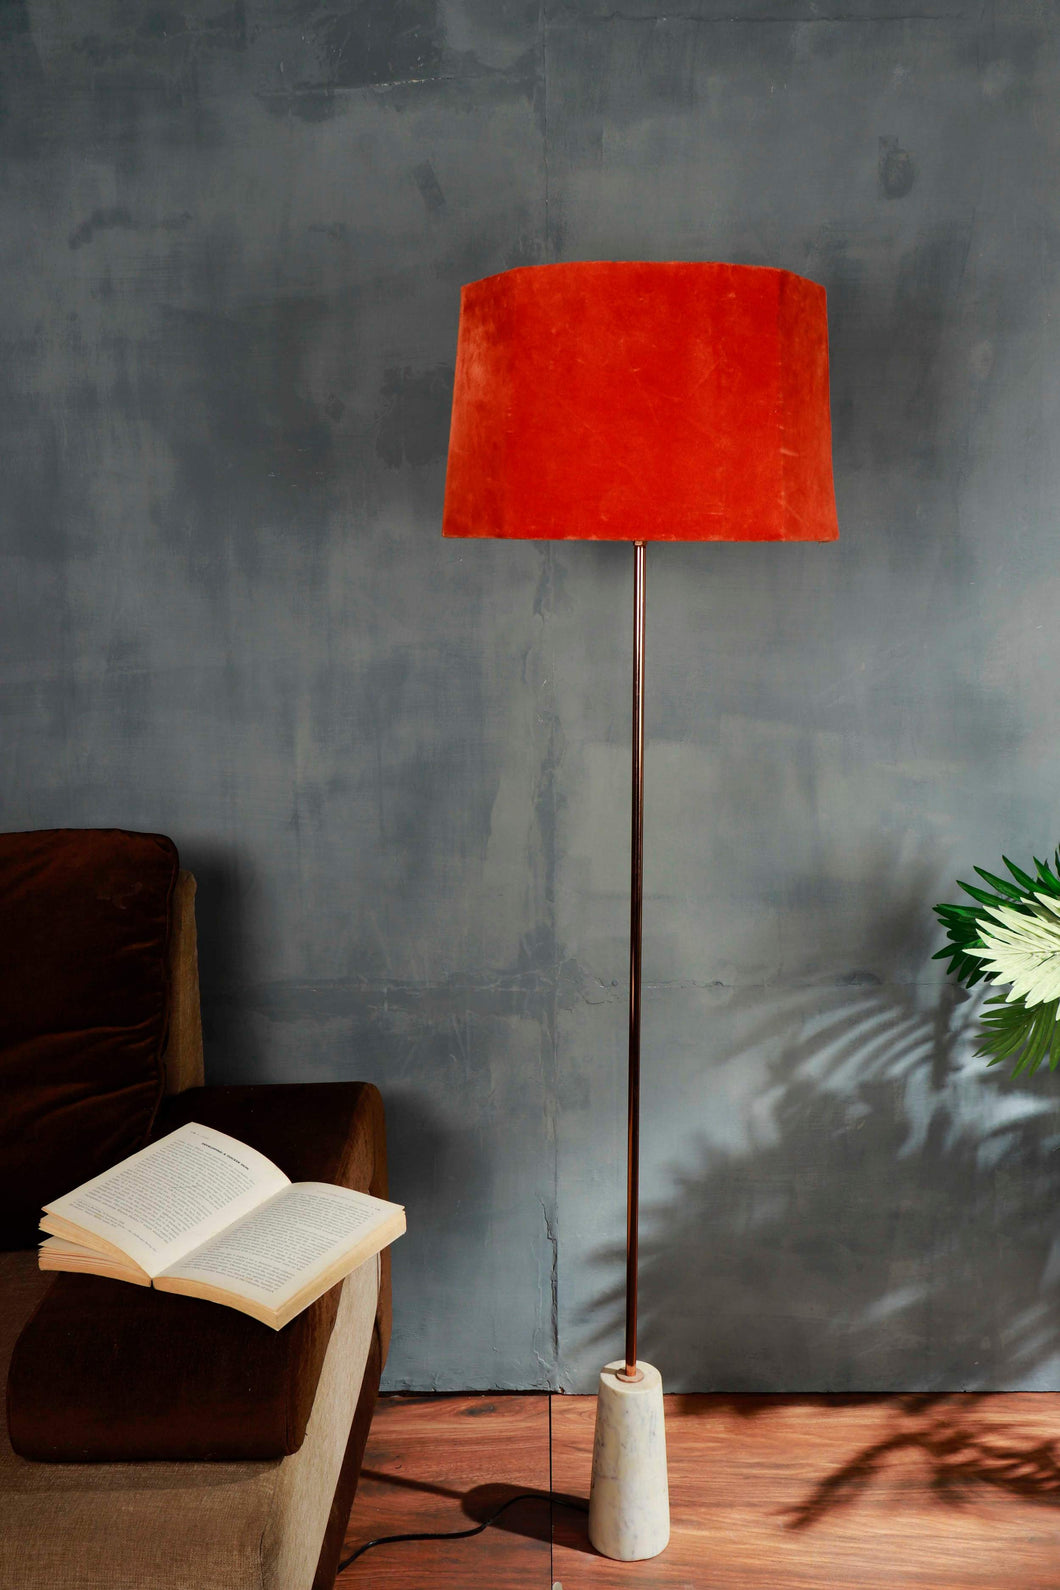 Marble Arrow Lamp Stand with Rugged Orange Lampshade